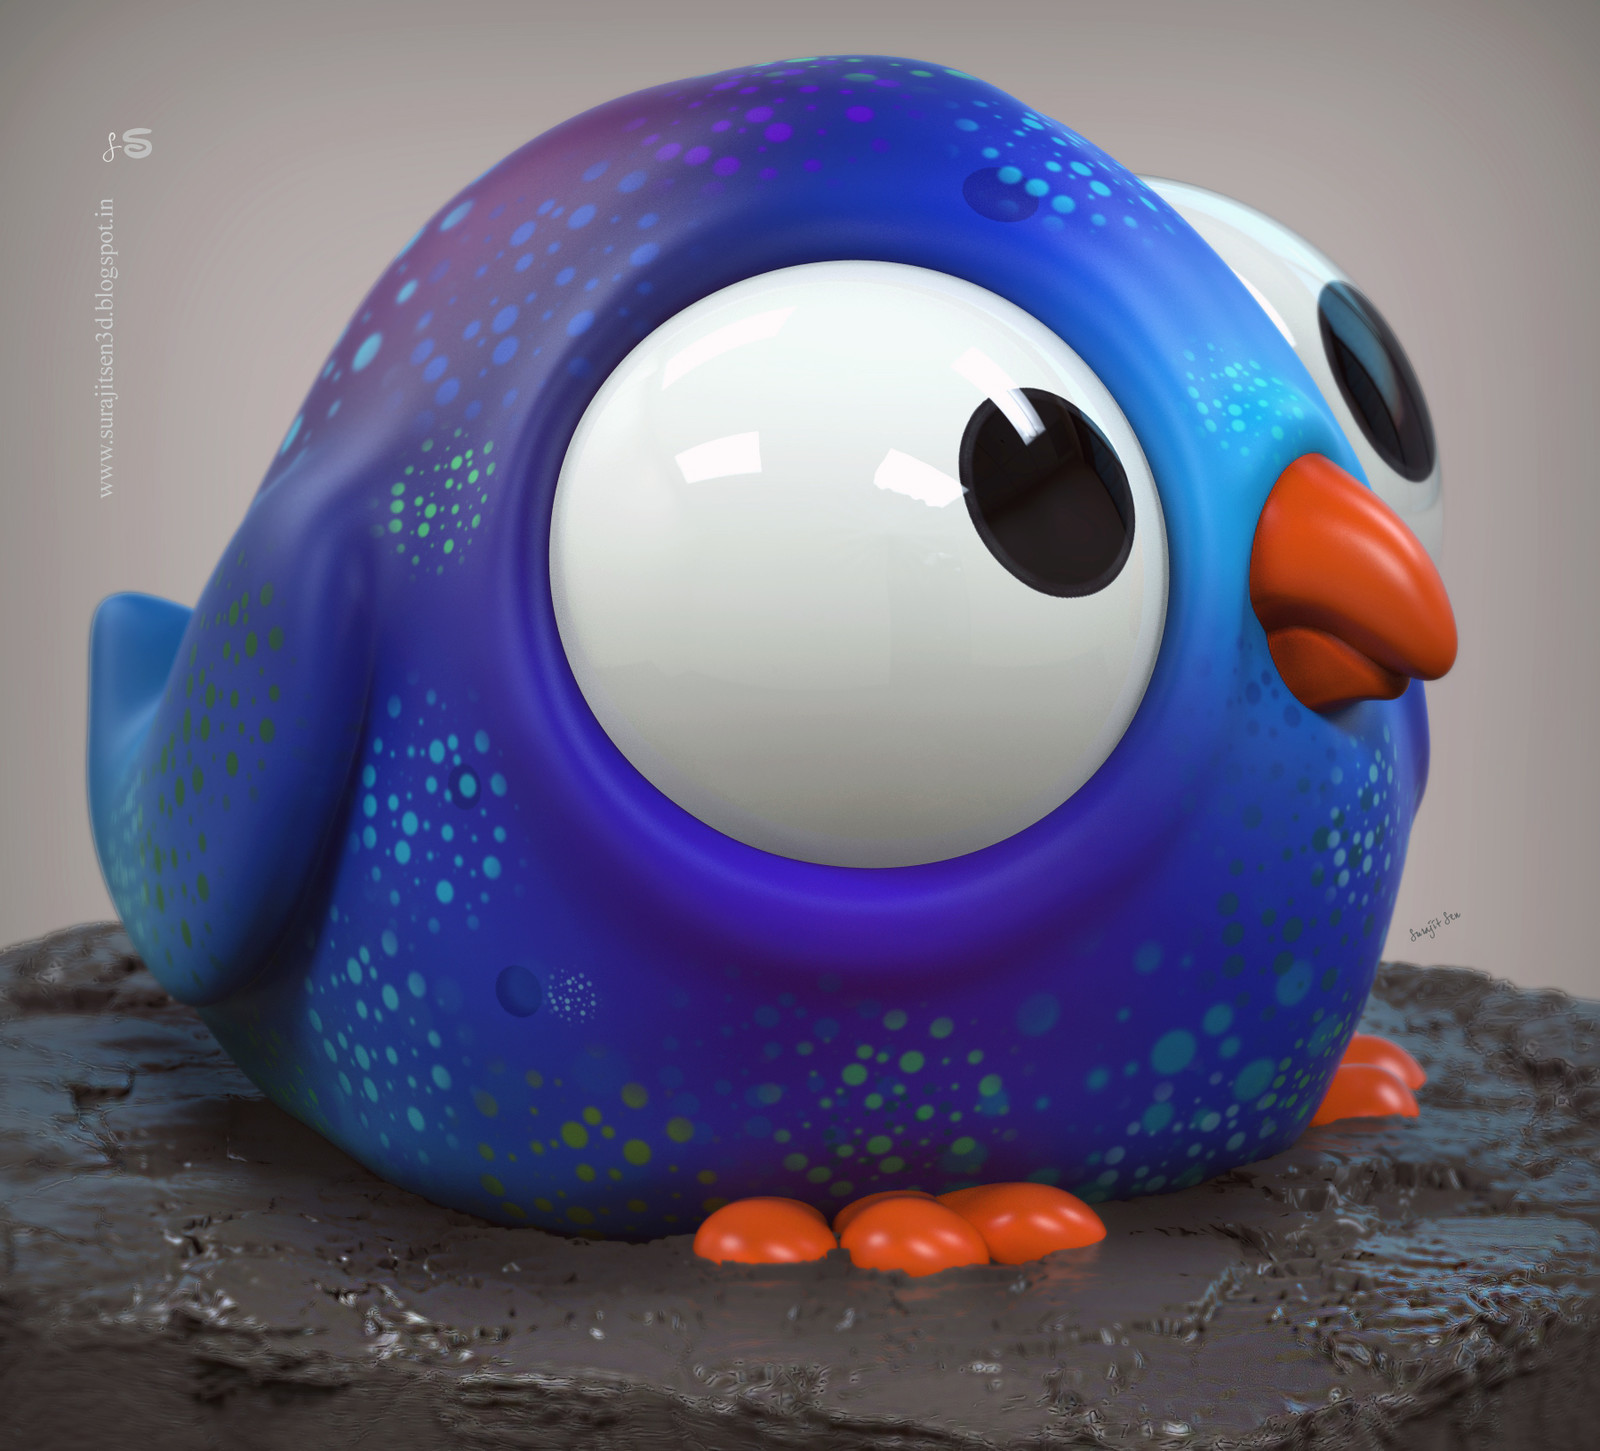 Bobo. A CG bird.  Used some basic tools and tried to make a form of bird. Wish to share a snap  :)